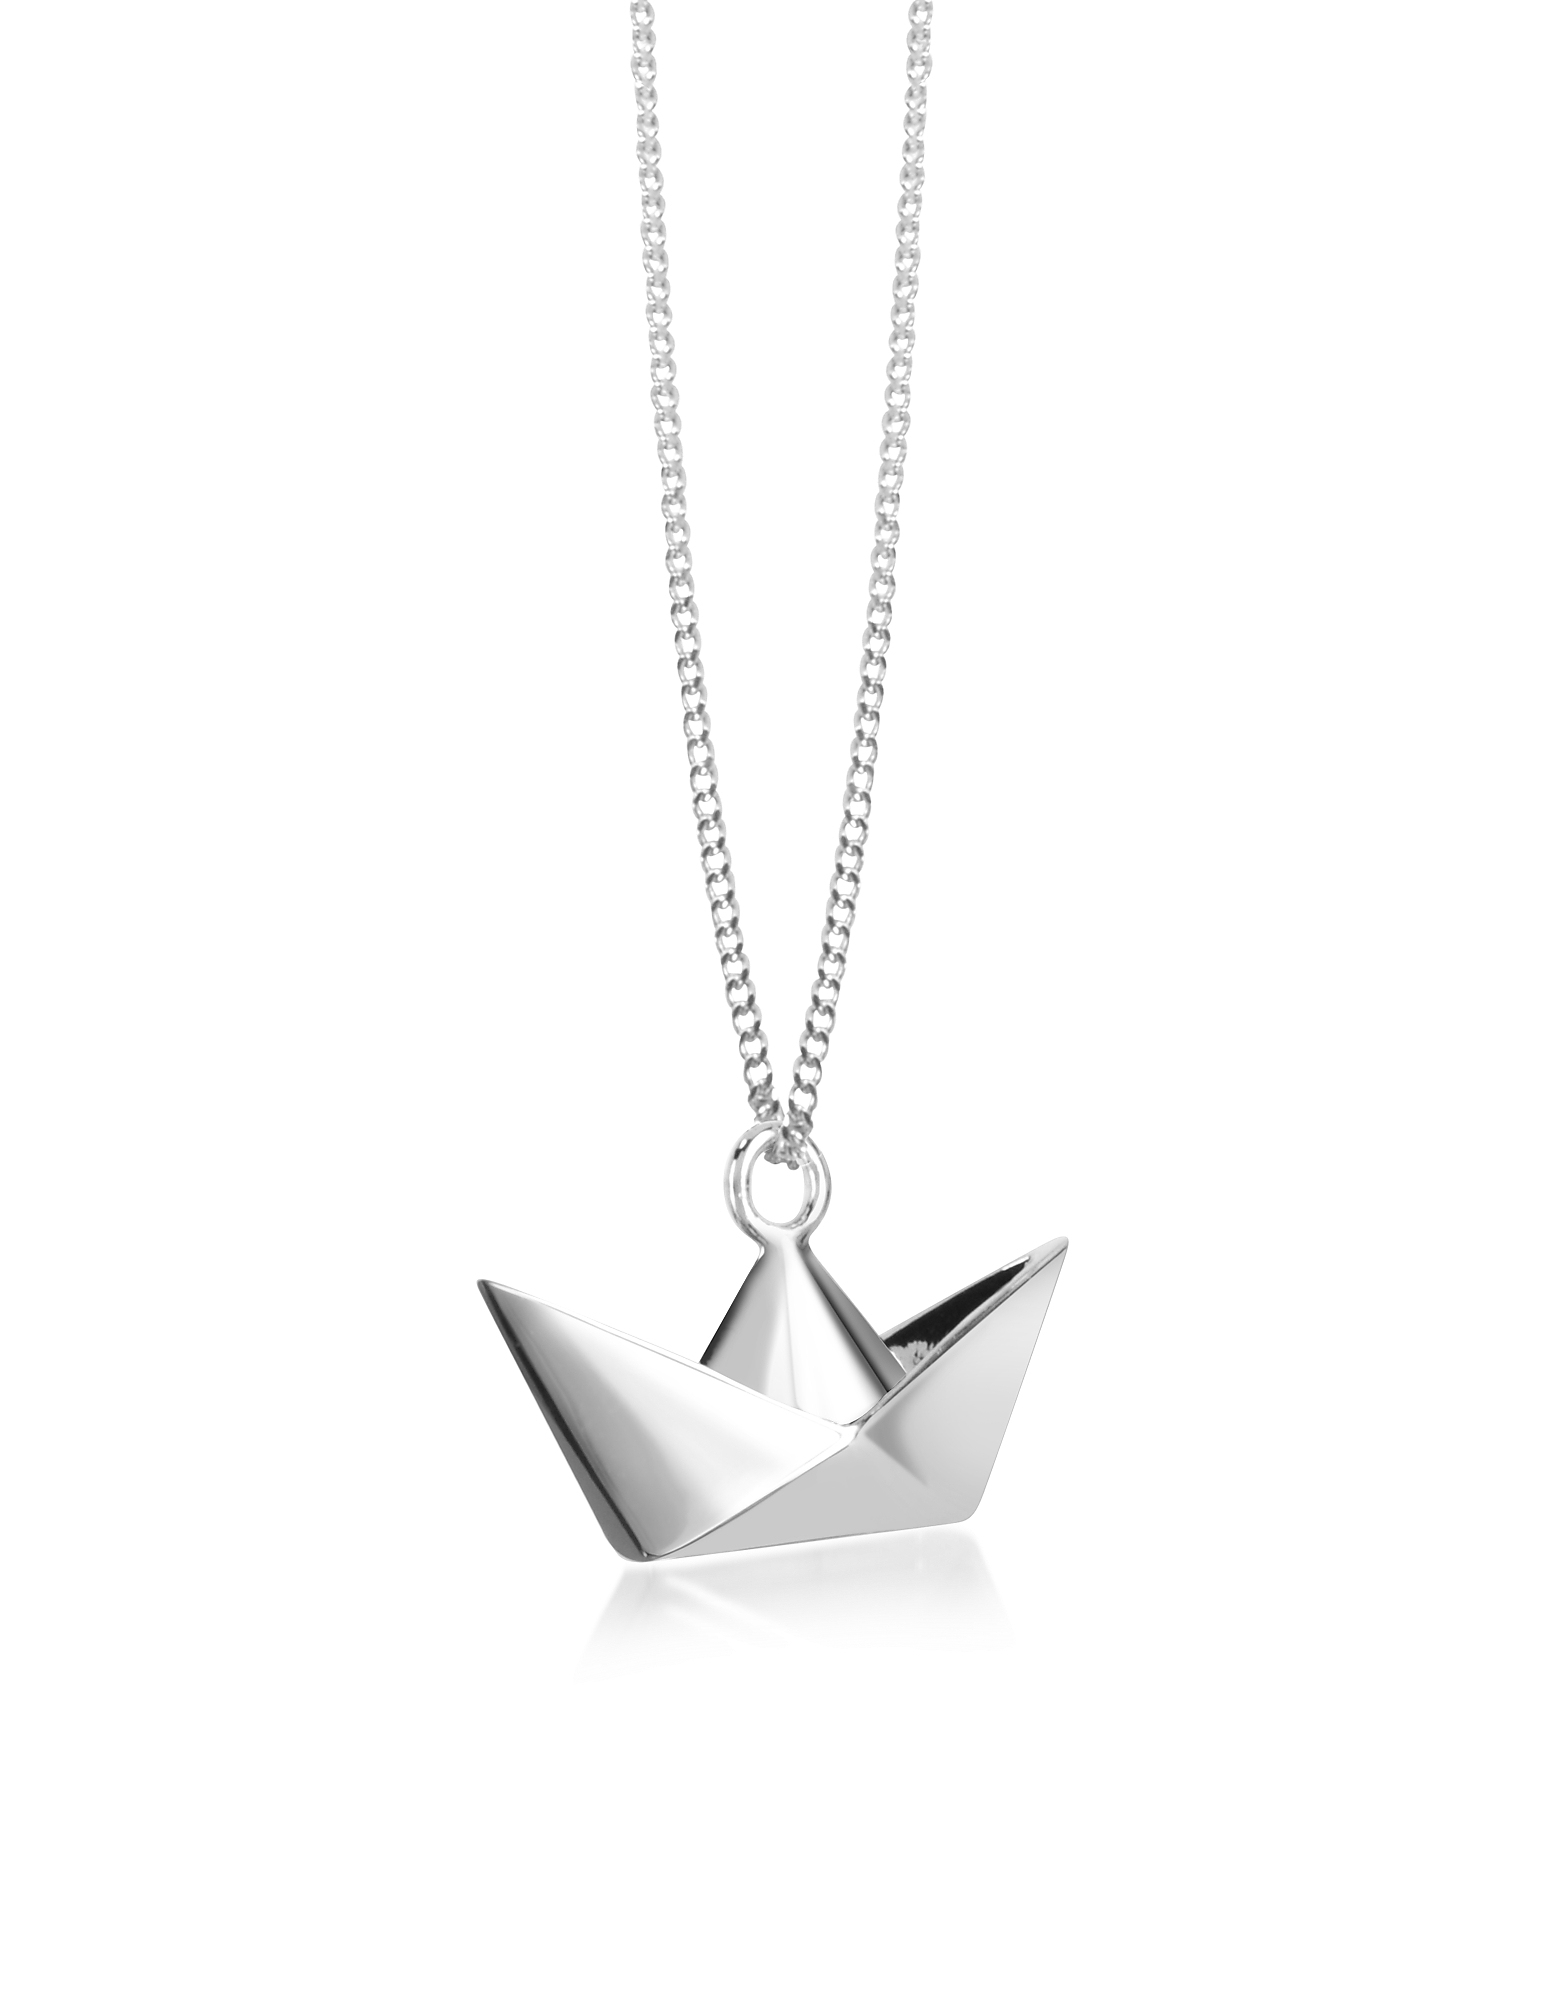 Origami Necklaces, Sterling Silver Boat Pendant Necklace